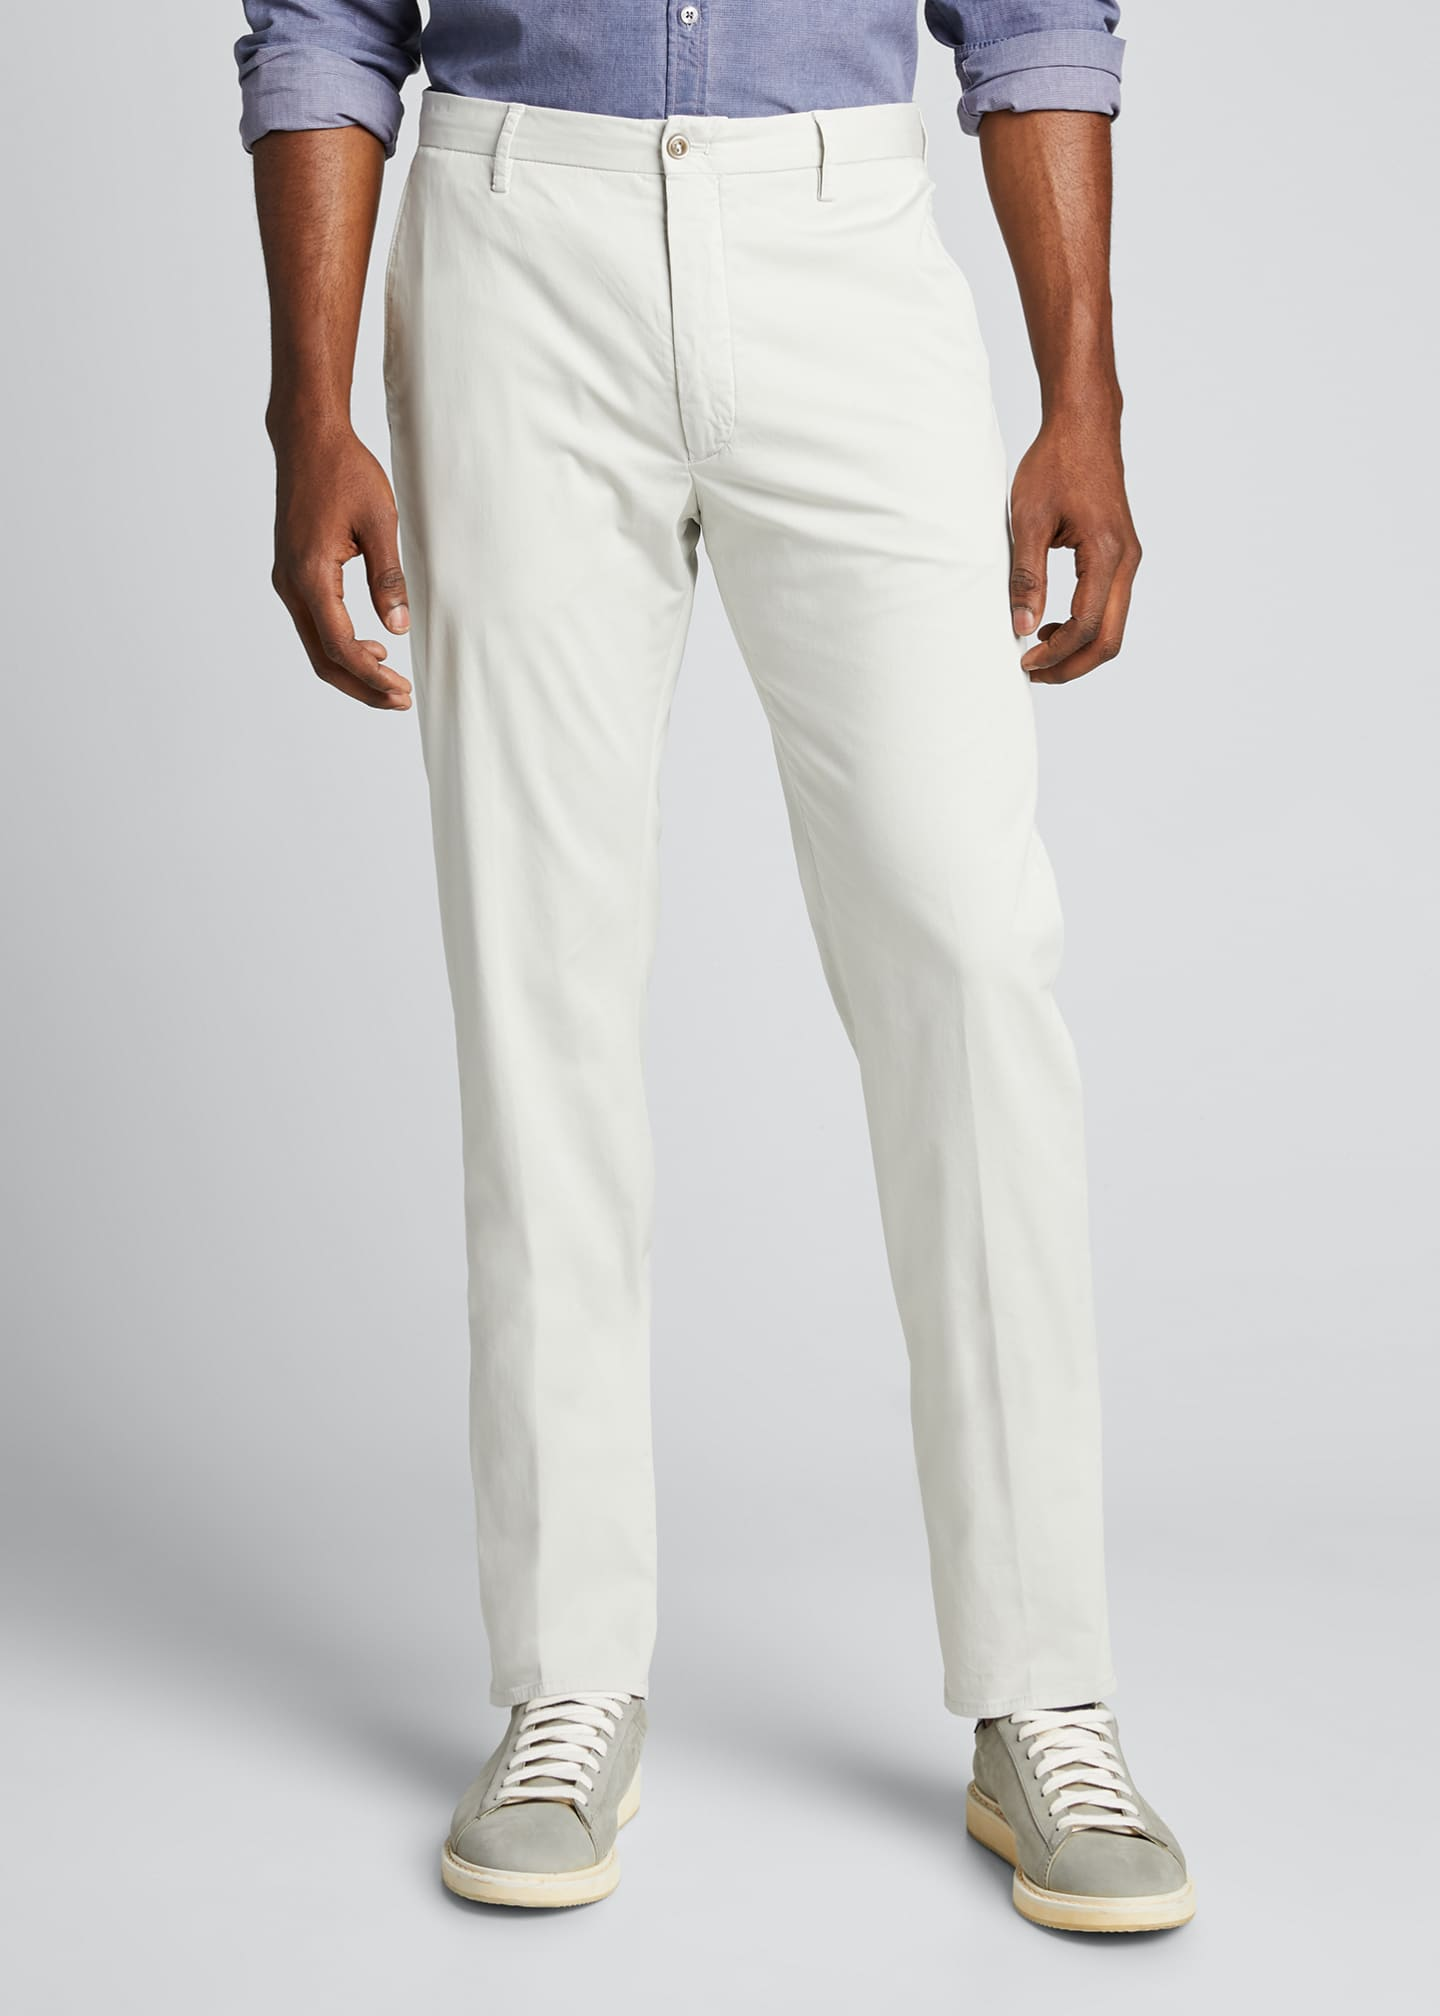 Image 3 of 5: Men's Garment Dye Stretch Poplin Pants